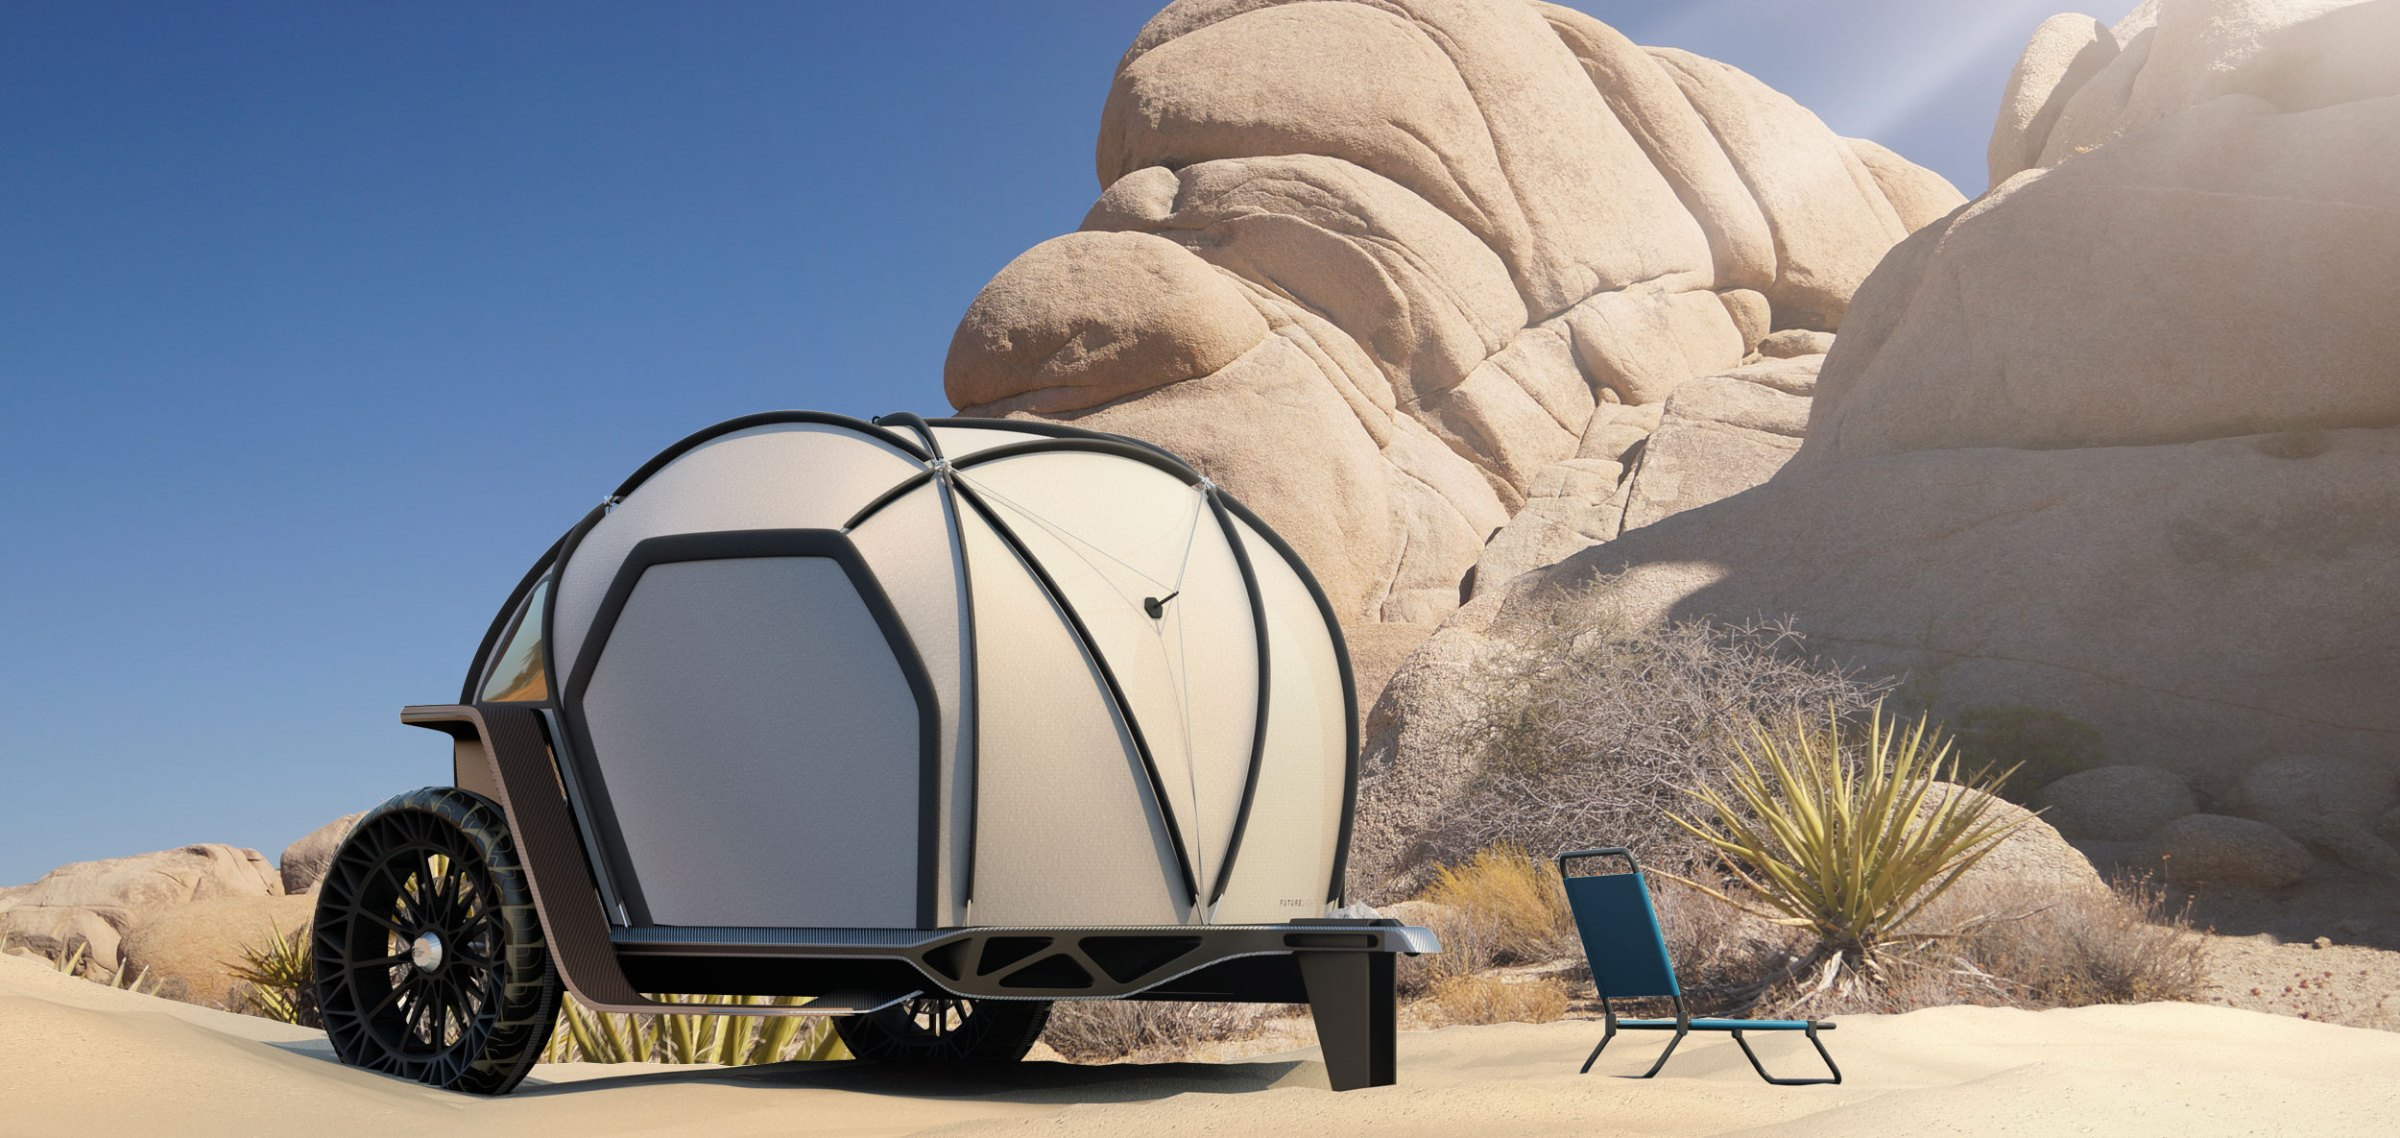 north face camper in joshua tree nationalpark